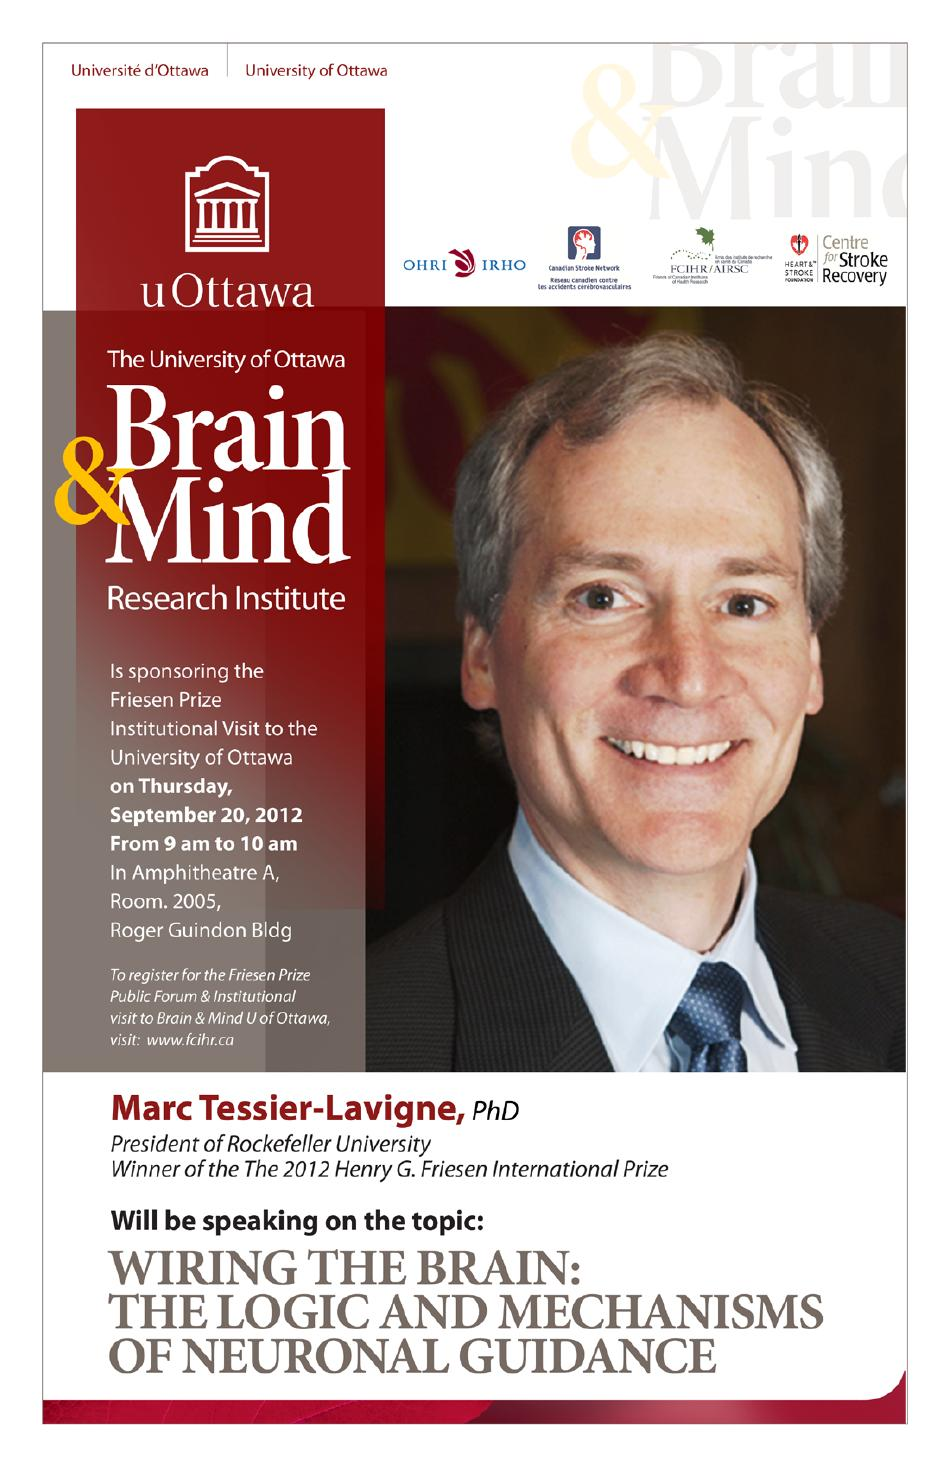 2012 Friesen Prize - Institutional visit - U of Ottawa Brain & Mind Institute - Dr. Marc Tessier-Lavigne